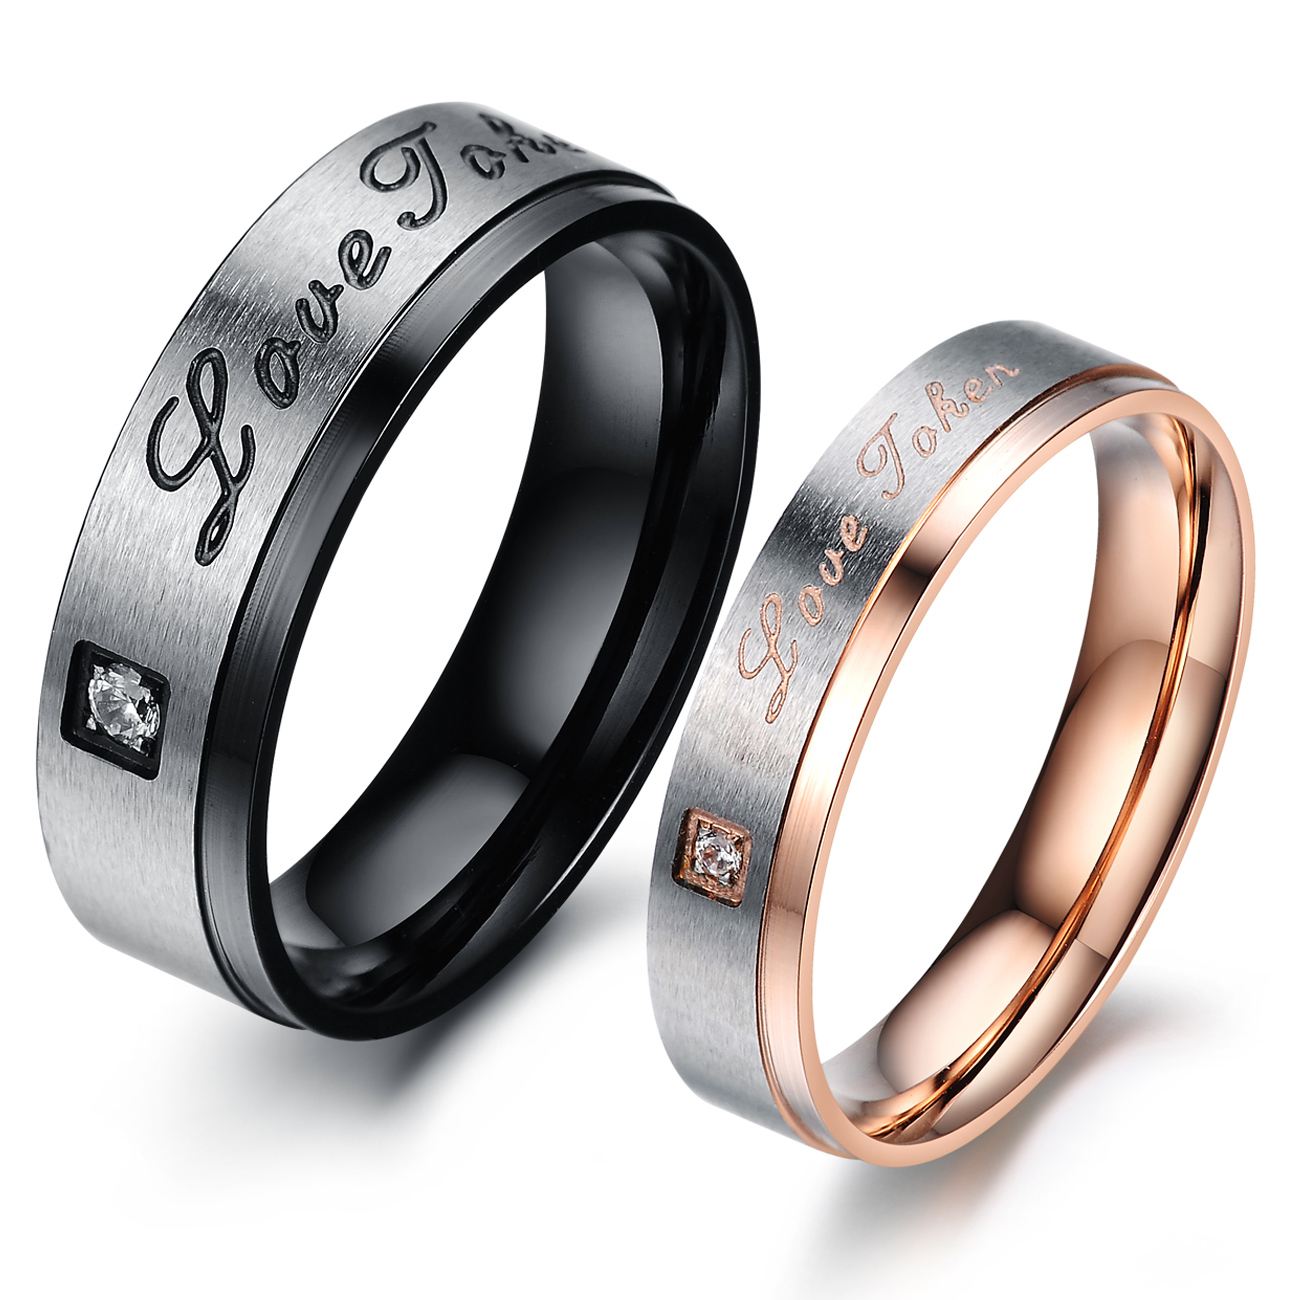 Brushed titanium ring lovers ring accessories finger ring N416(China (Mainland))